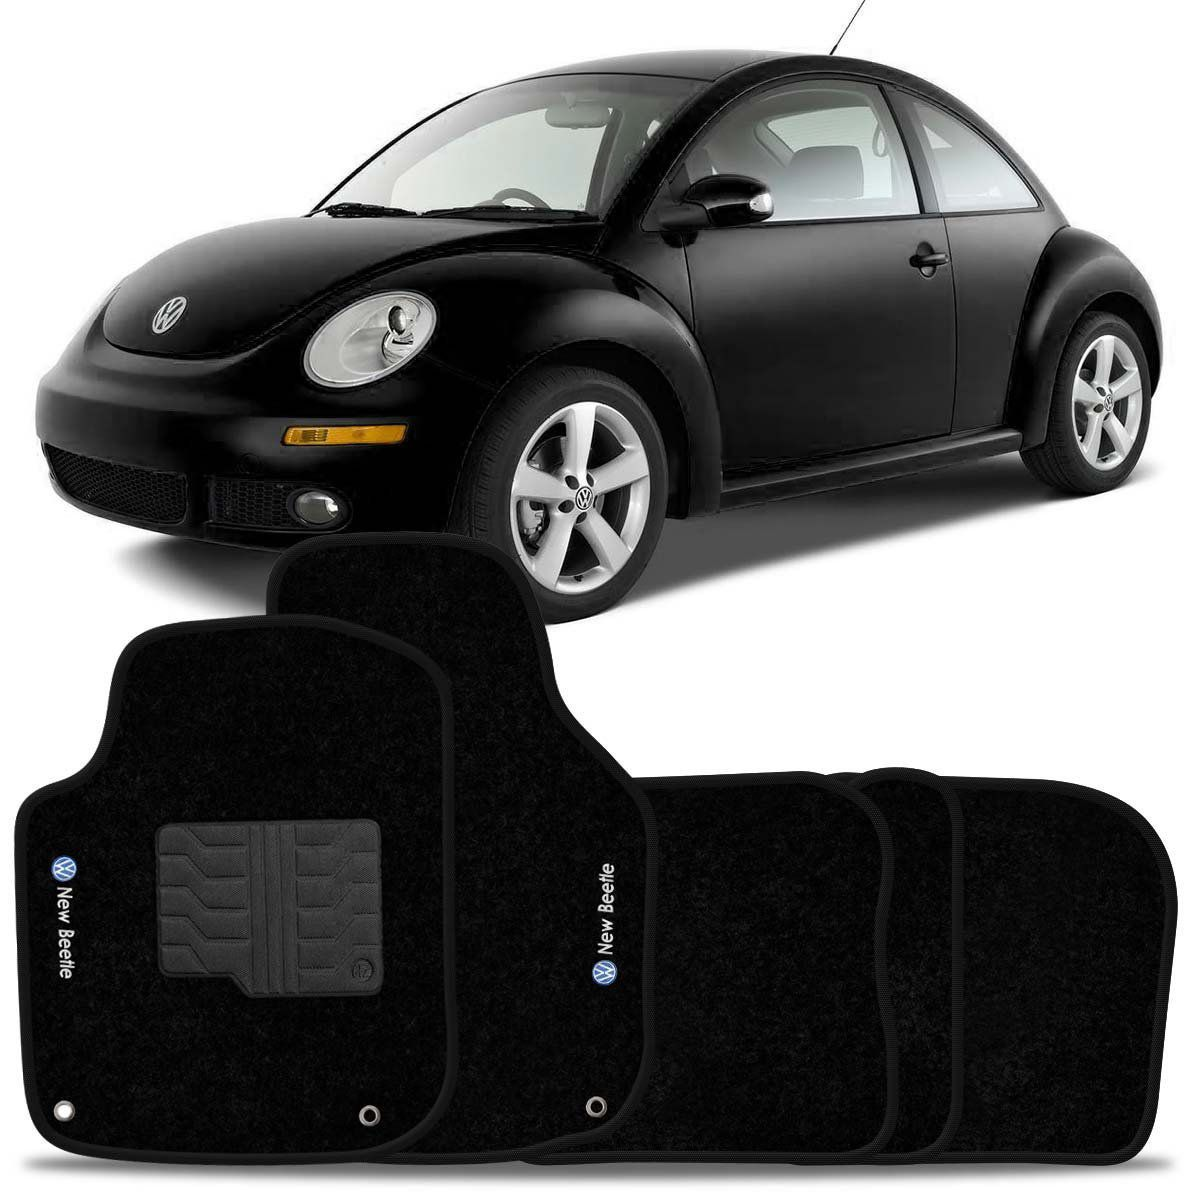 Tapete Carpete New Beetle 2000 2001 2002 2003 2004 2005 2006 2007 2008 2009 2010 2011 Preto